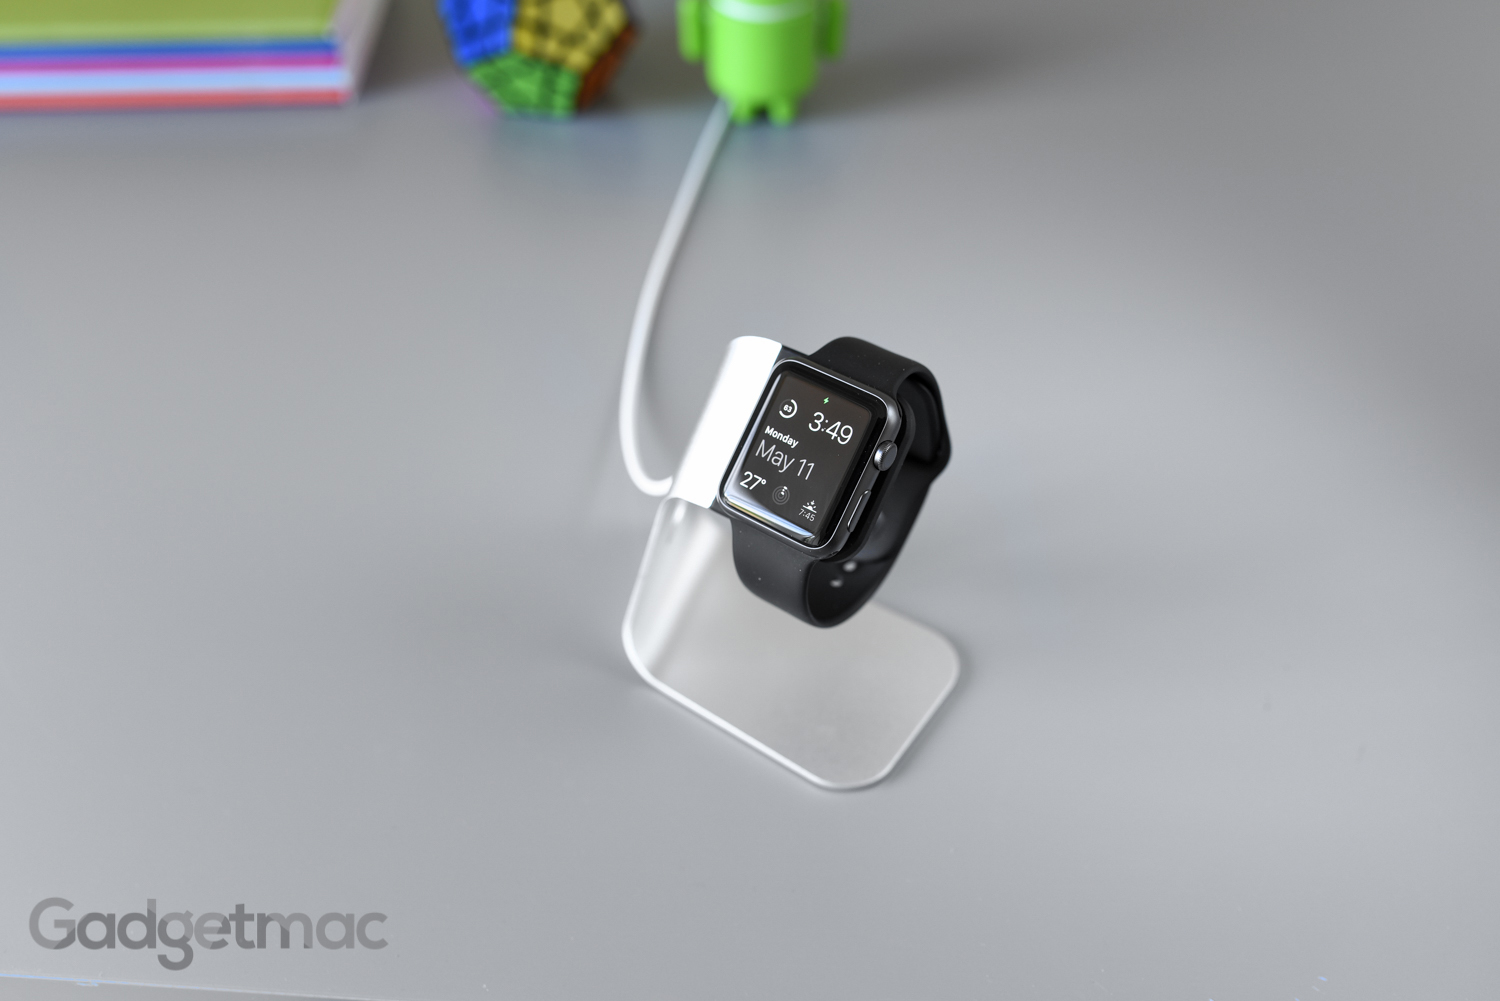 spigen-s330-apple-watch-stand-dock.jpg